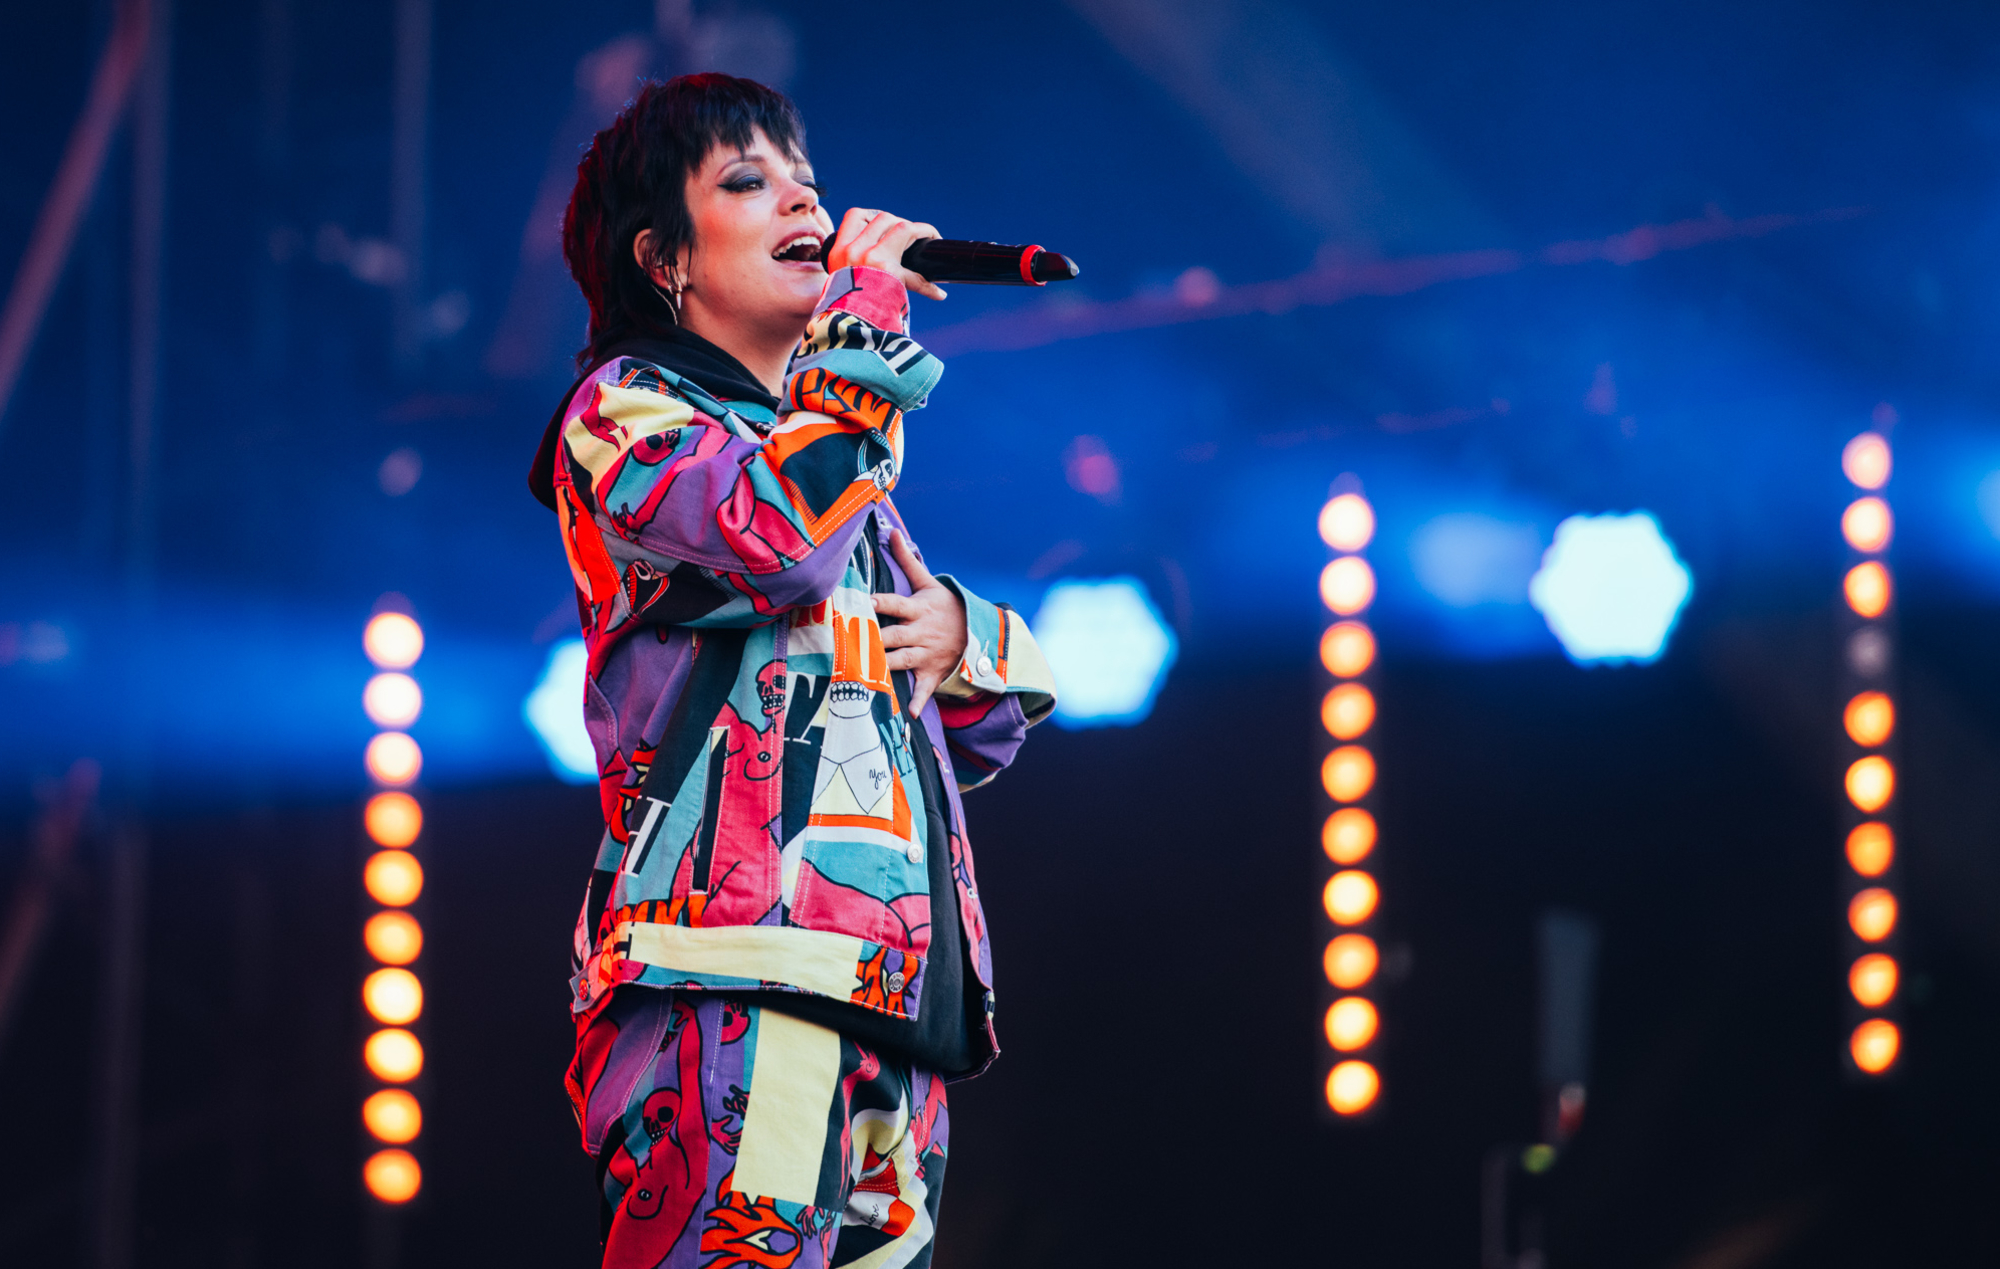 Isle of Wight Festival 2019: 10 of the best performances we saw at Seaclose Park